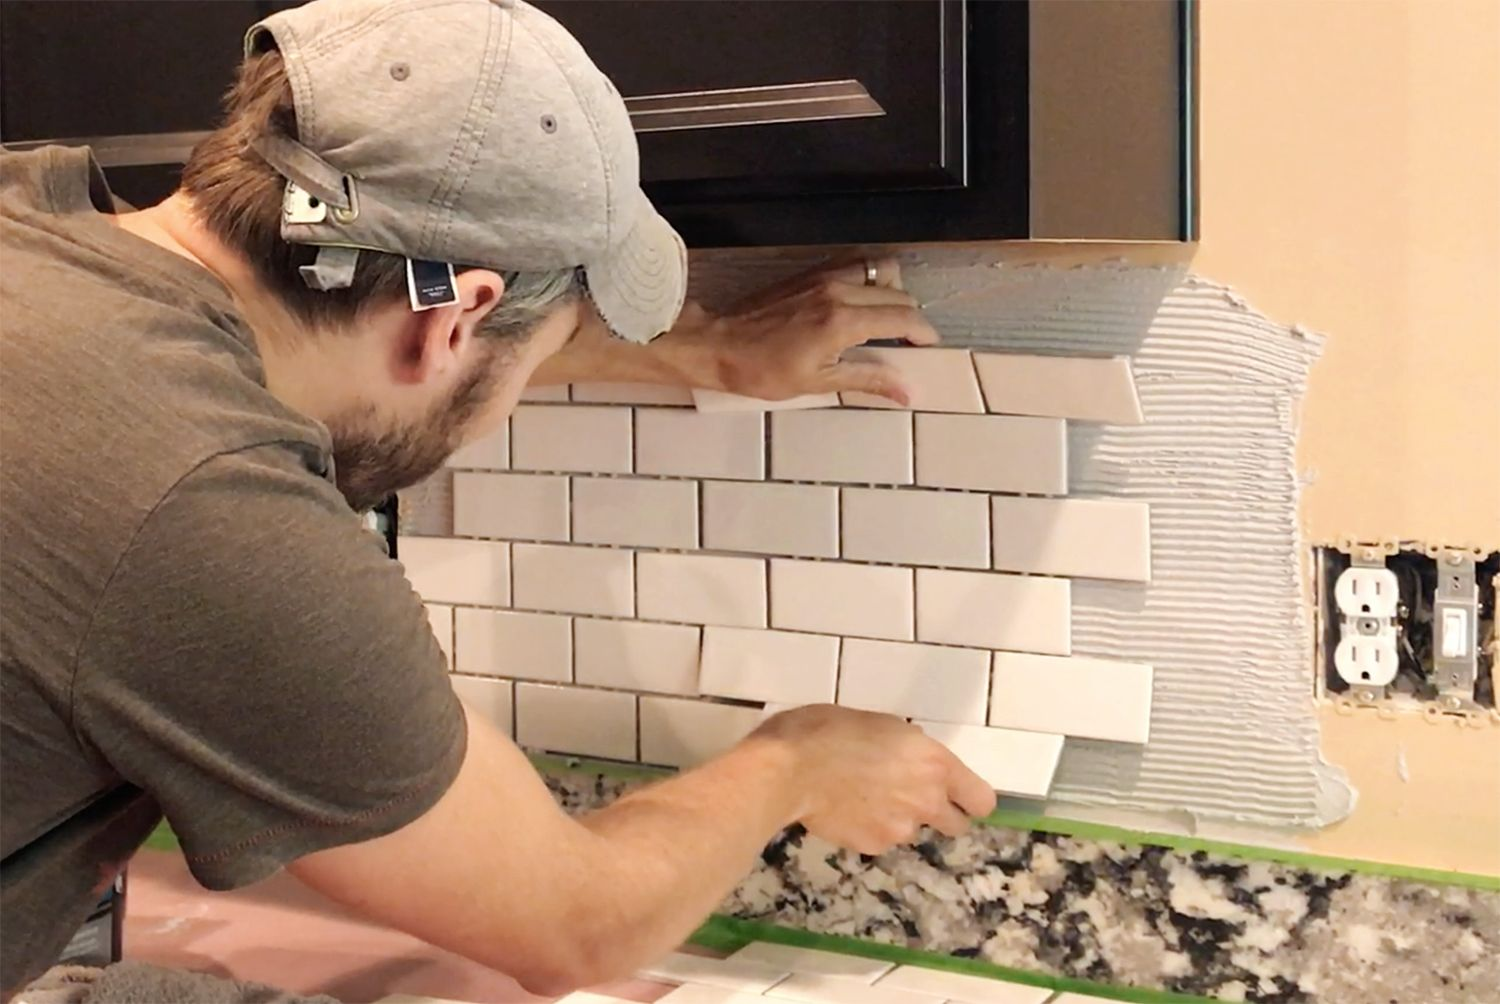 How To Install A Subway Tile Kitchen Backsplash Young House Love Subway Tile Backsplash Kitchen Subway Tile Kitchen Kitchen Tiles Backsplash